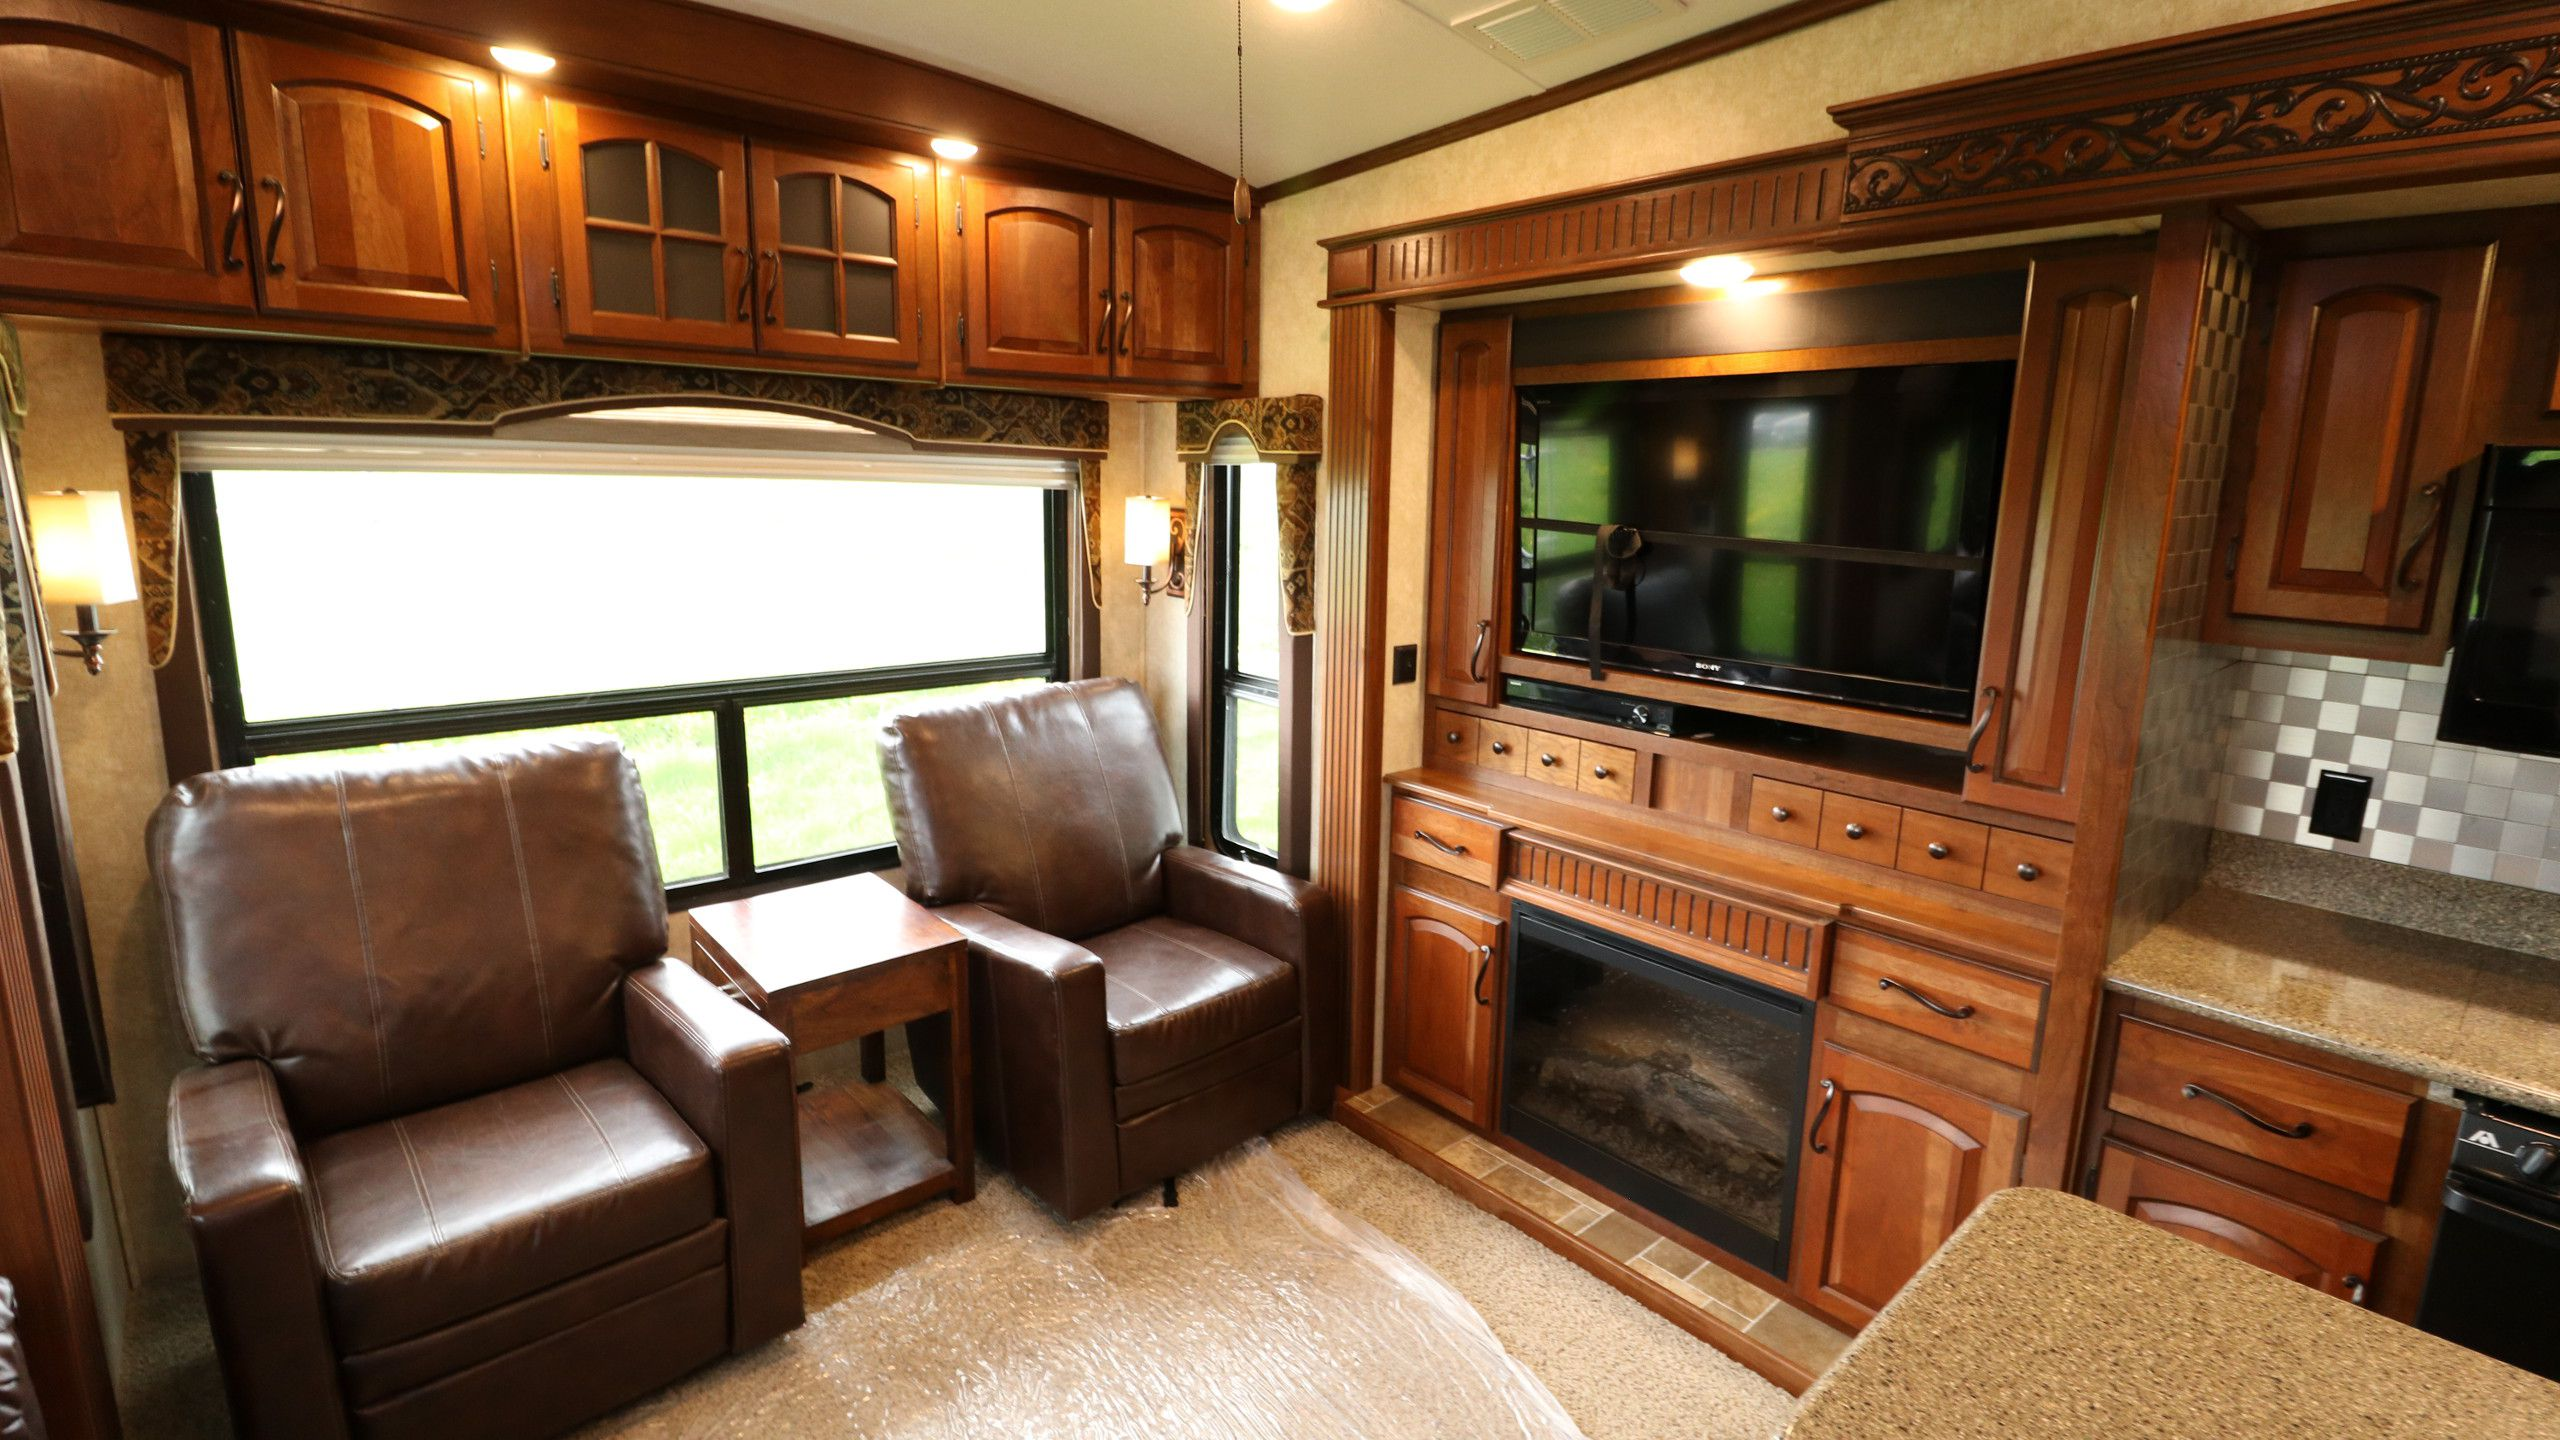 Montana 5Th Wheel For Sale >> View Can-Am RV Centre RVs for sale | 1 - 10 of 21 units